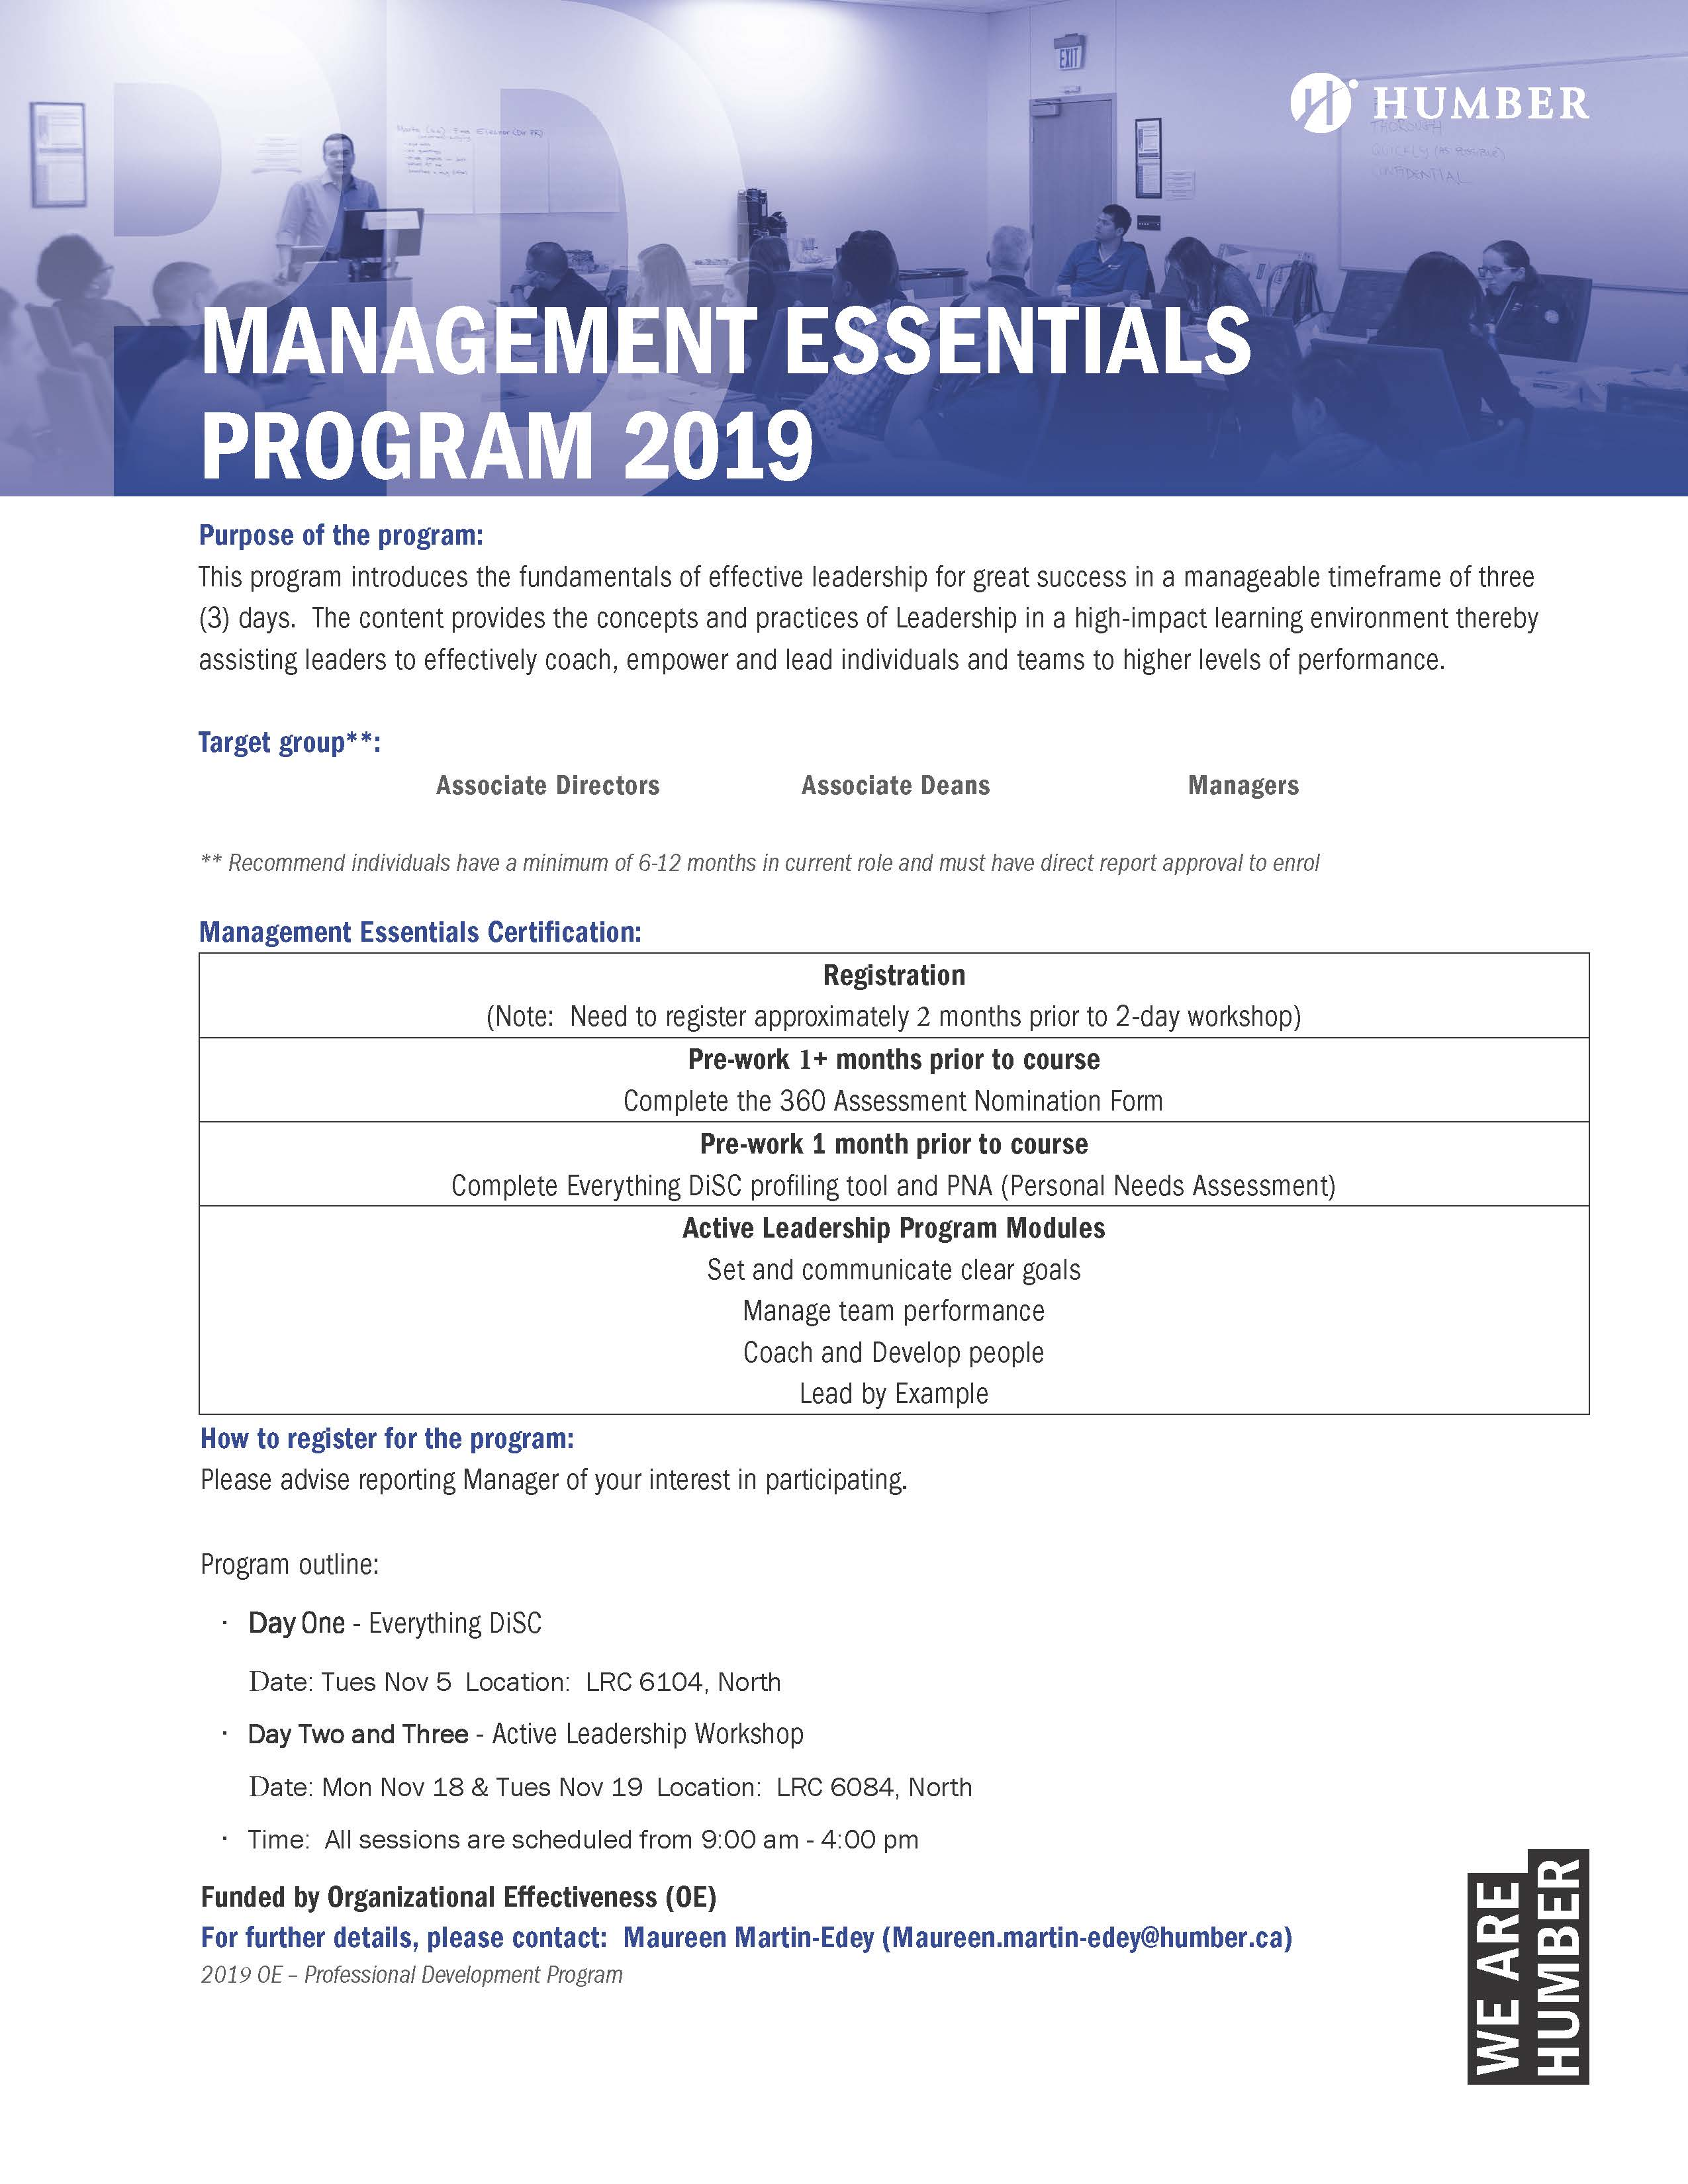 Management Essentials (Active Leadership) Program